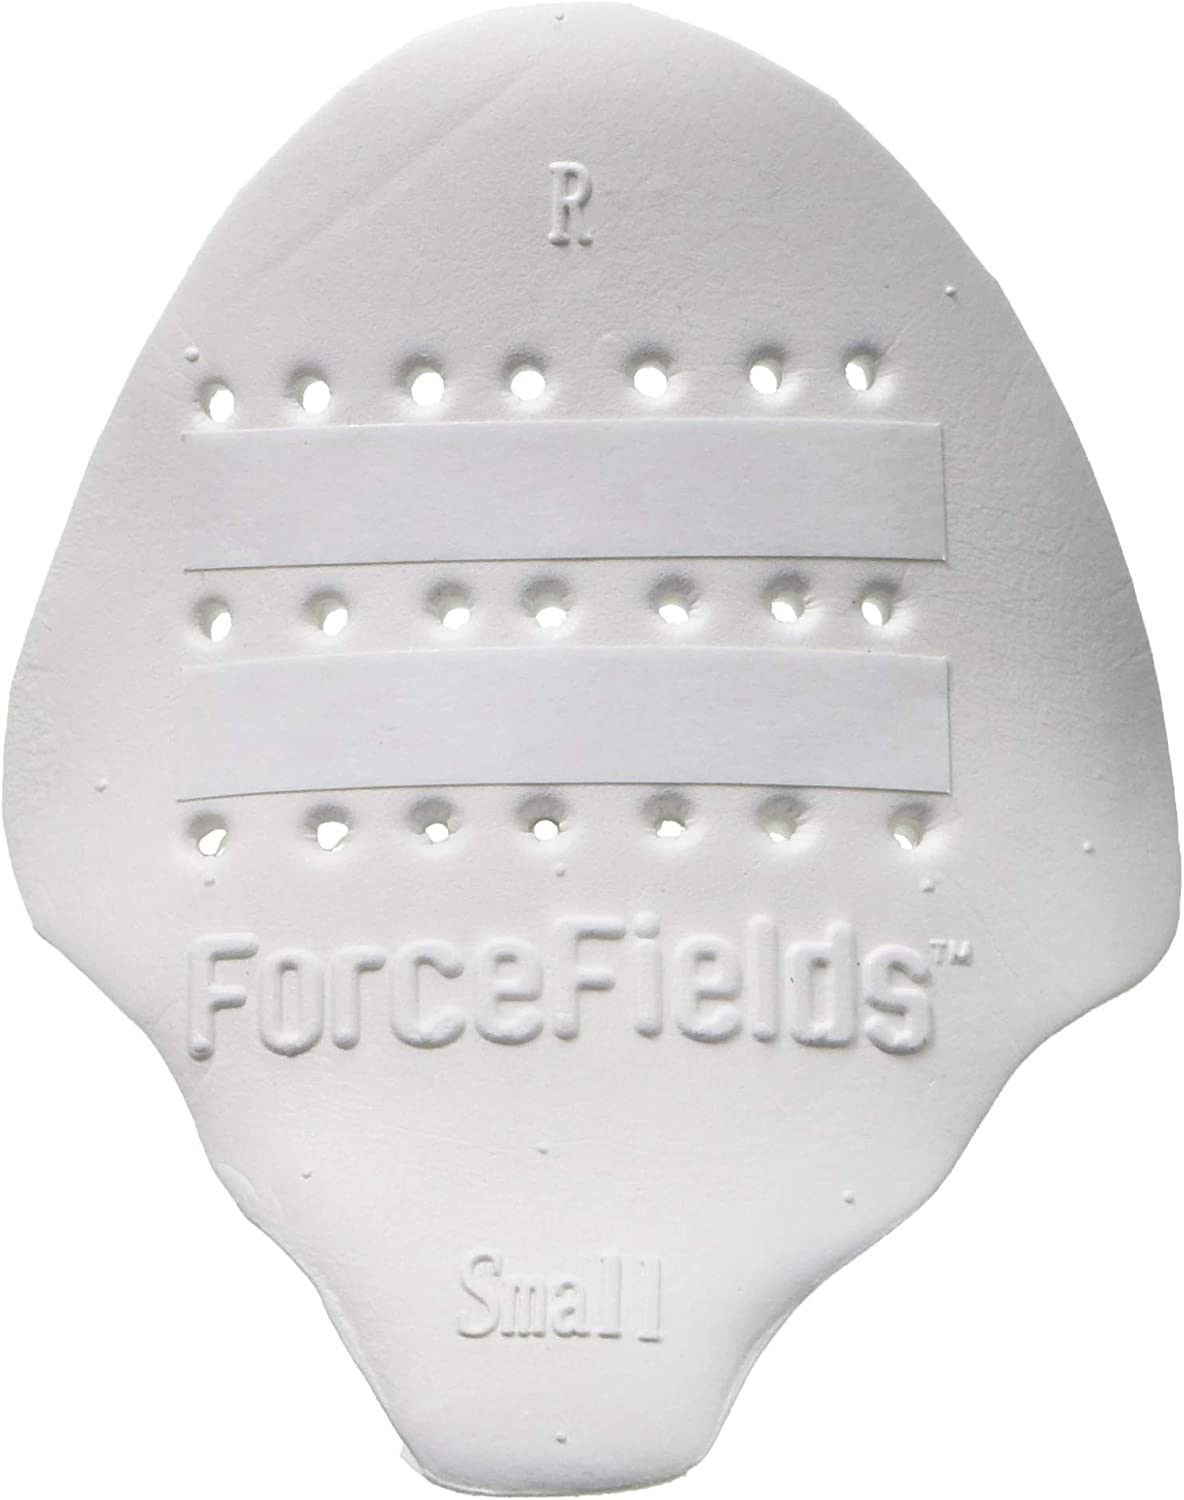 can you buy force fields in nike store